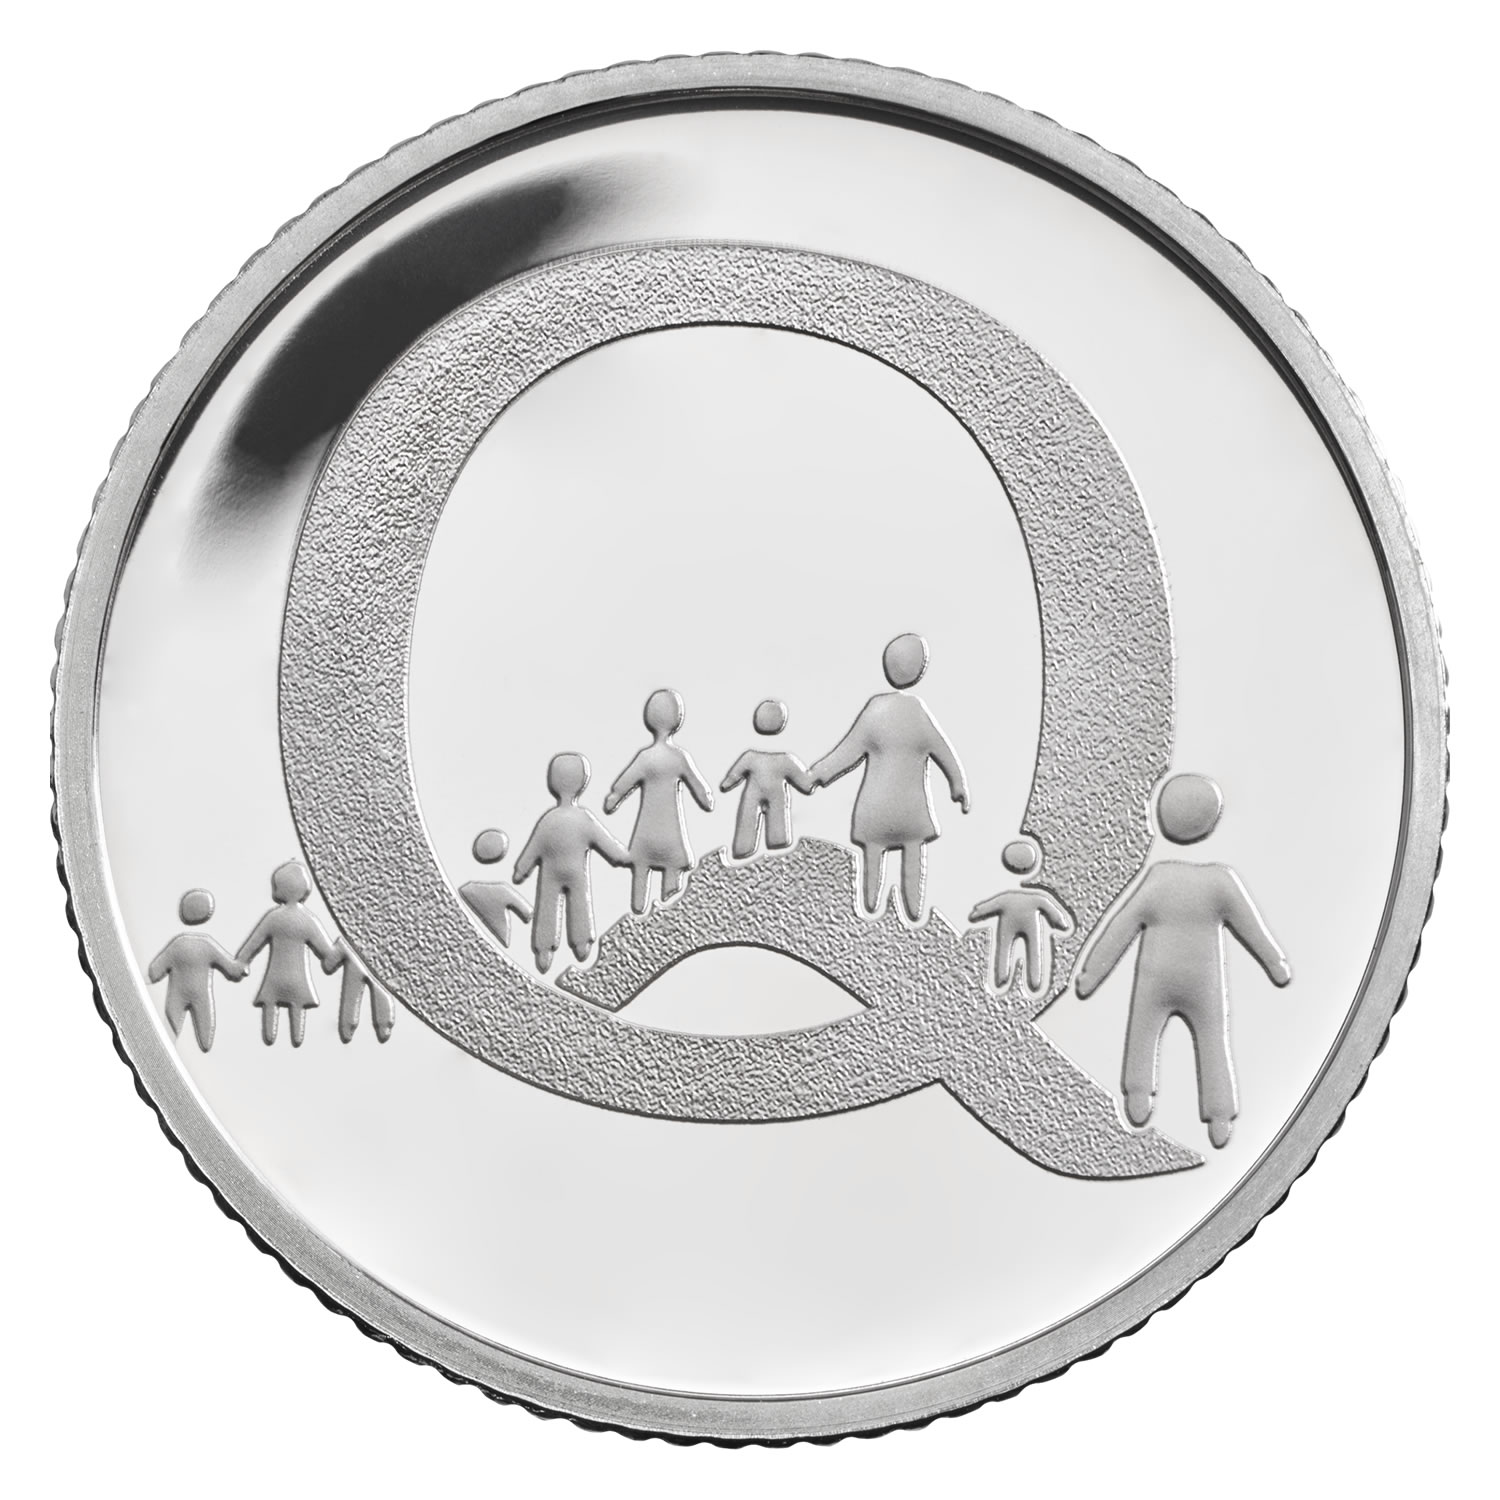 Q - Queuing 2018 UK 10p Silver Proof Coin